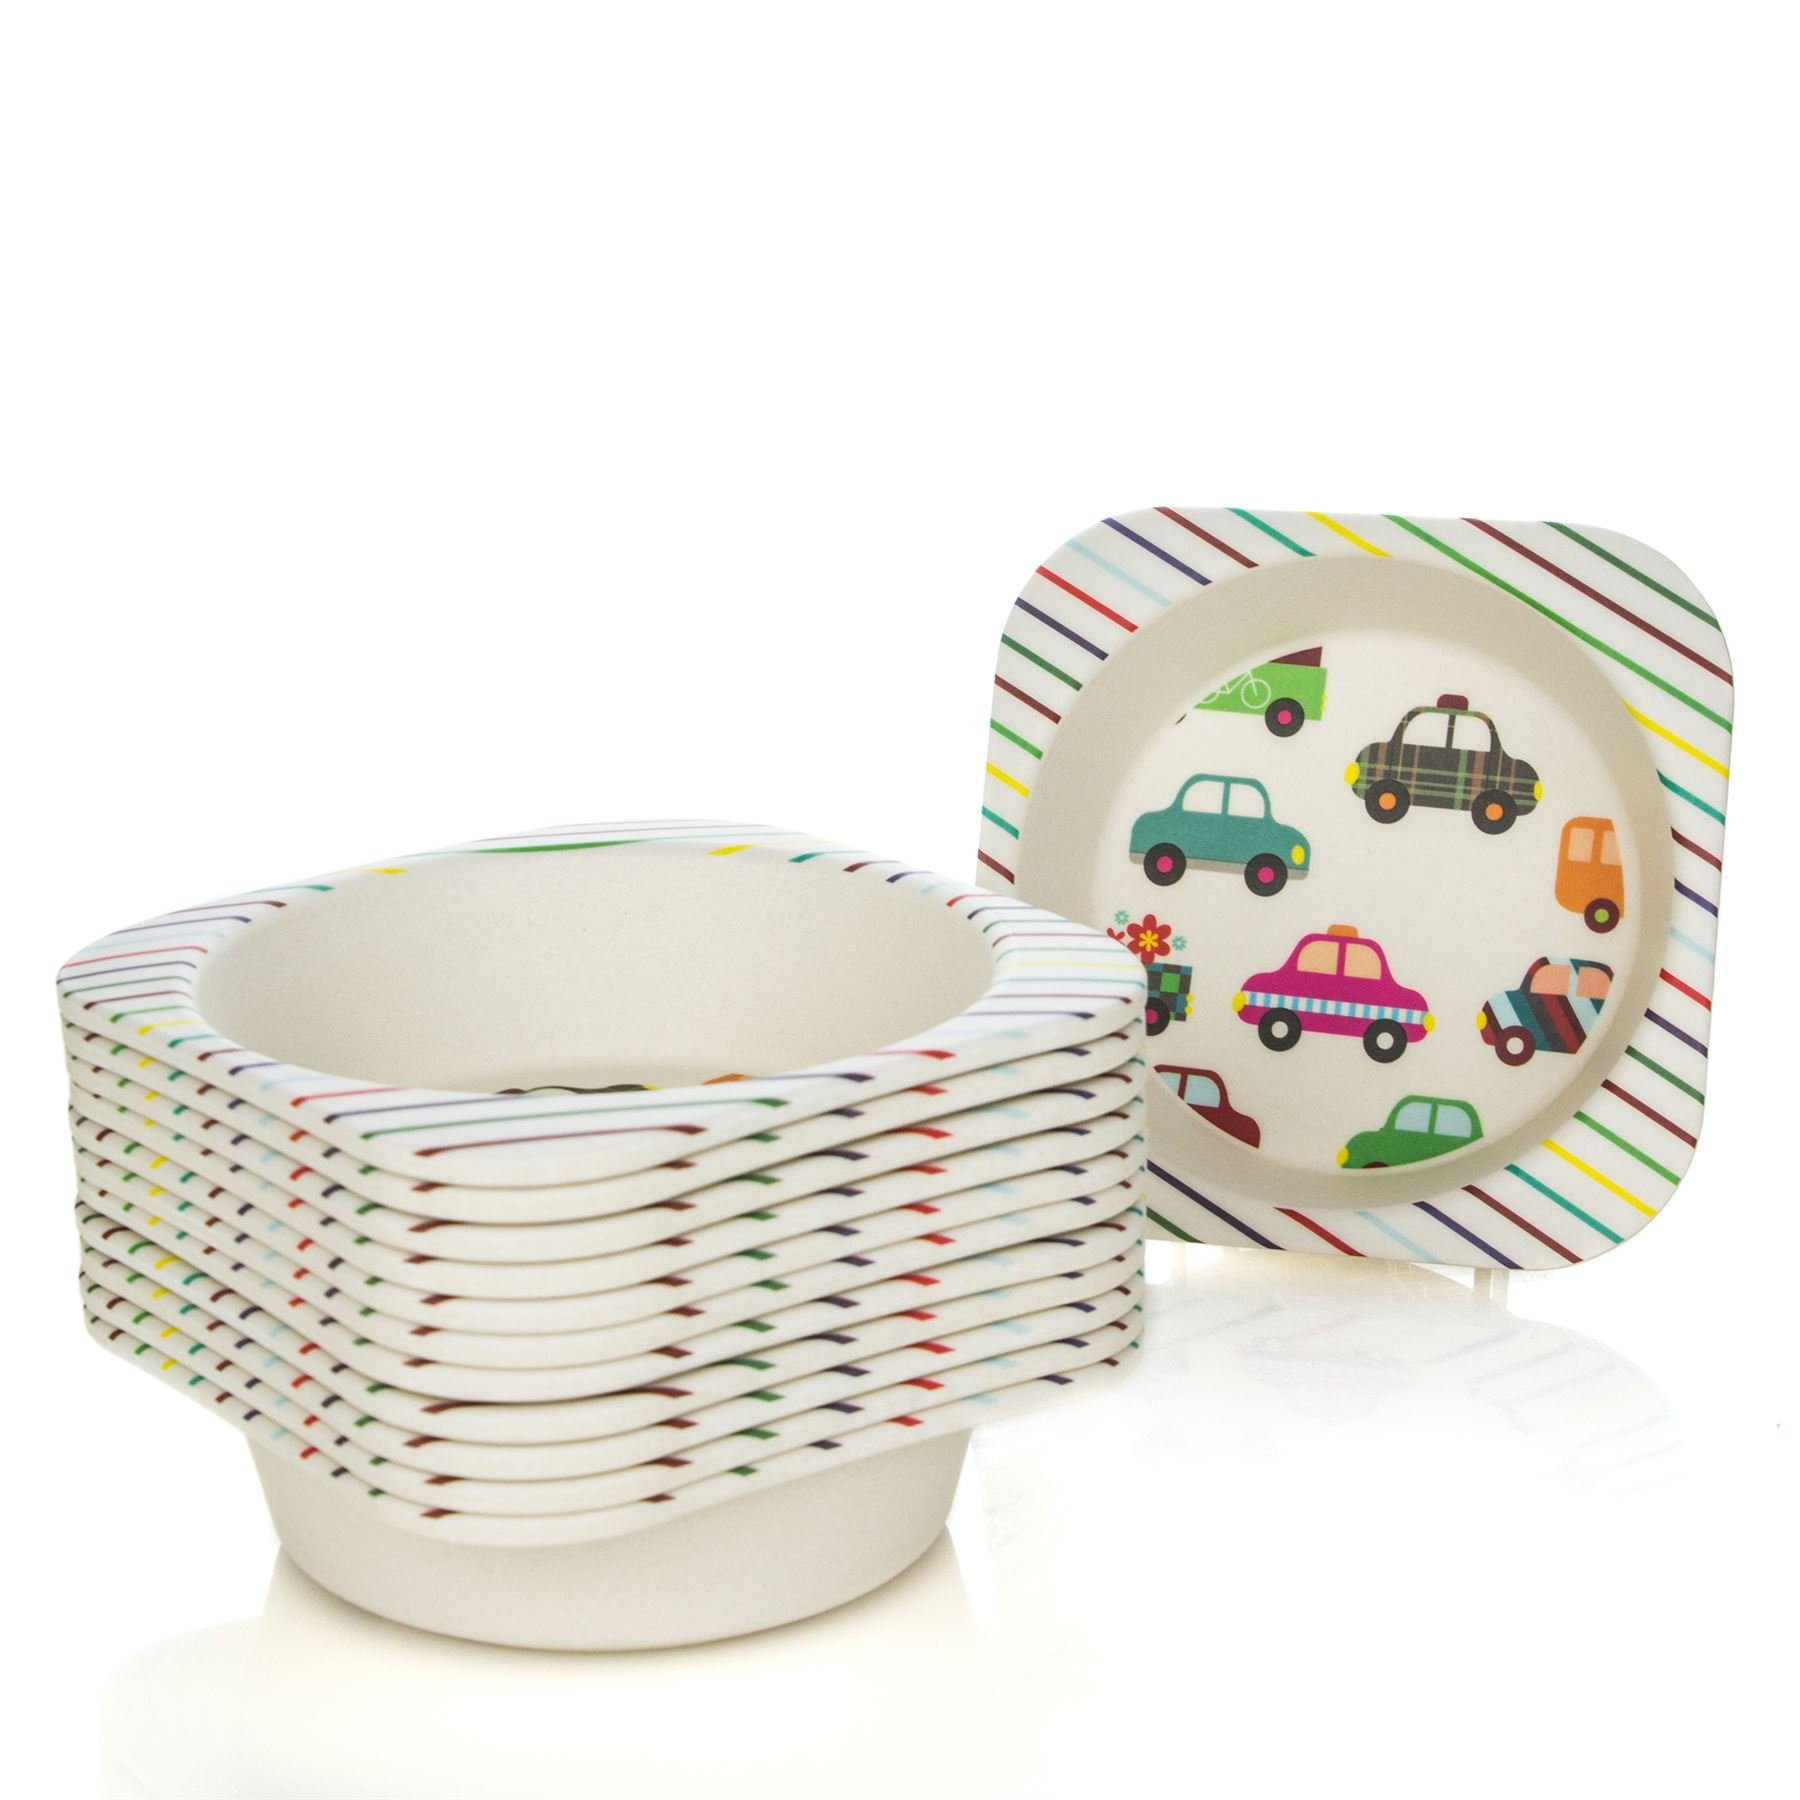 Tiny Dining Children's Bamboo Fibre Dining Bowl - Cars - Pack of 12